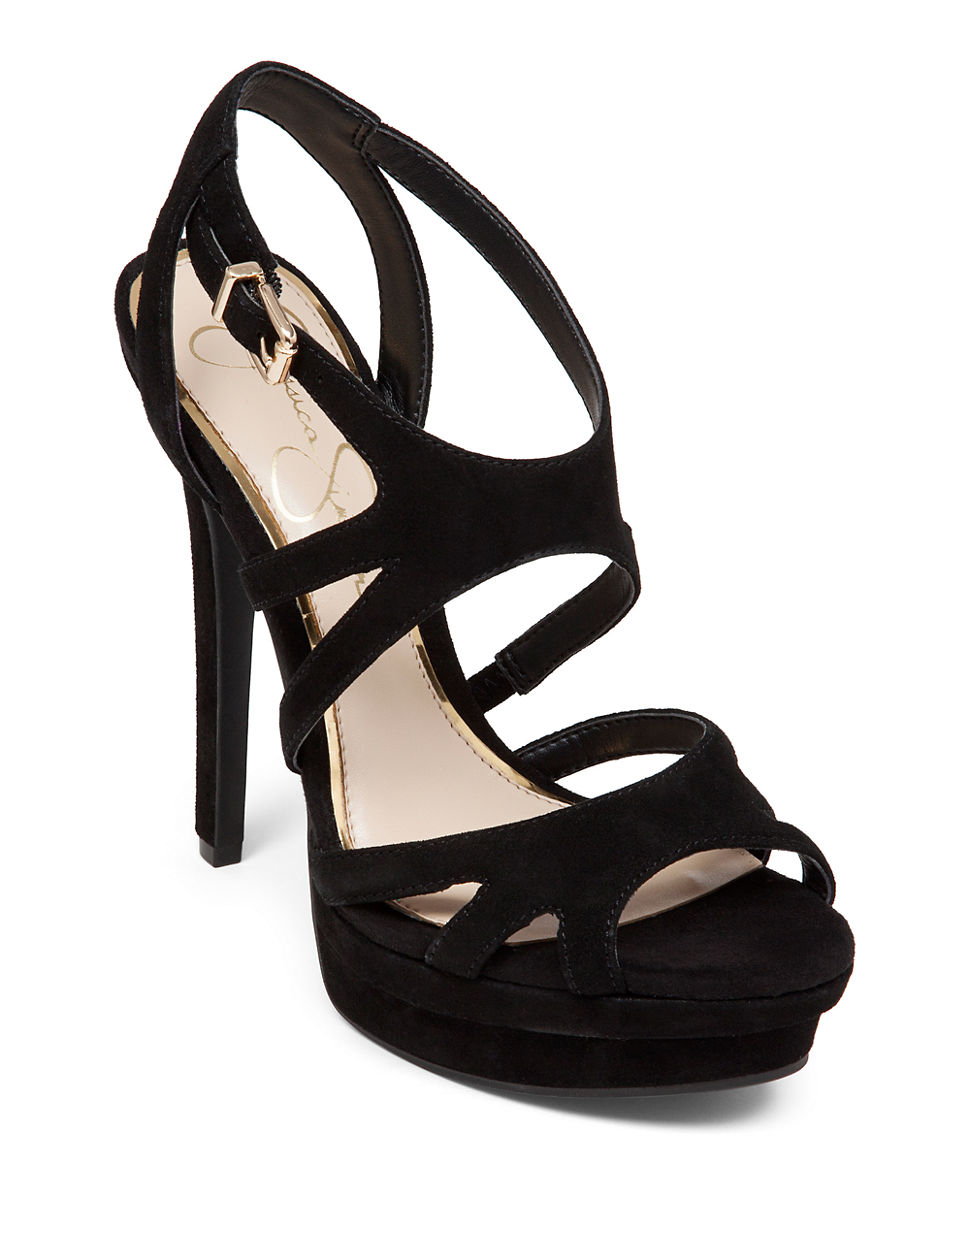 Jessica simpson Presslie Suede High-heel Sandals in Black | Lyst